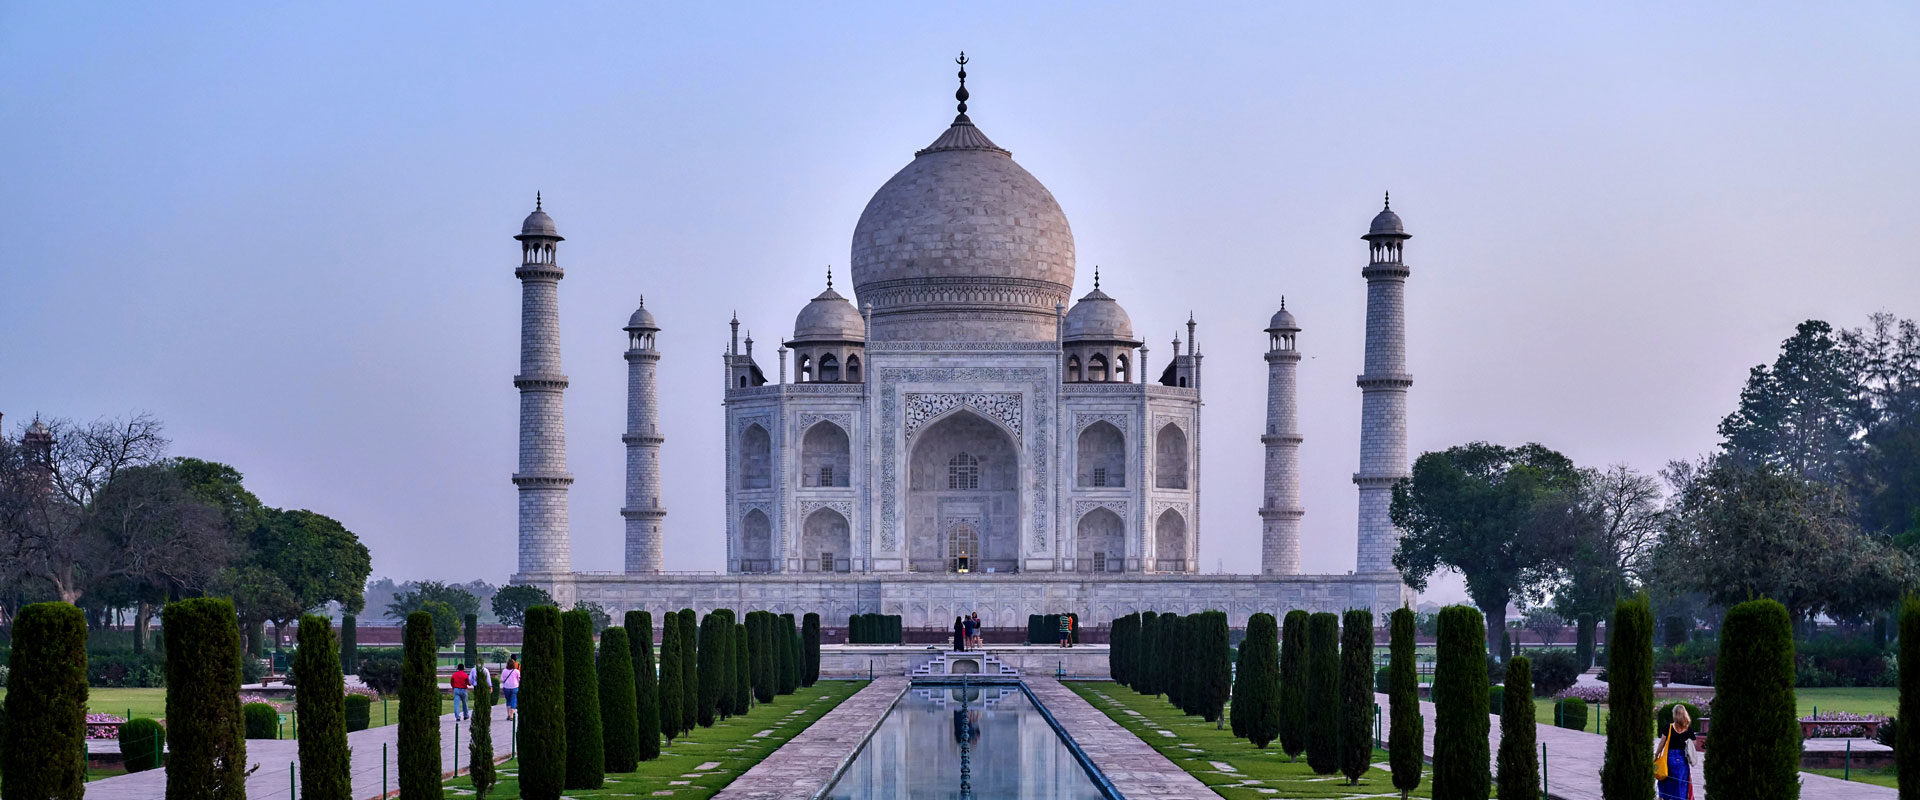 You Deserve to Visit - The Taj! Once More!